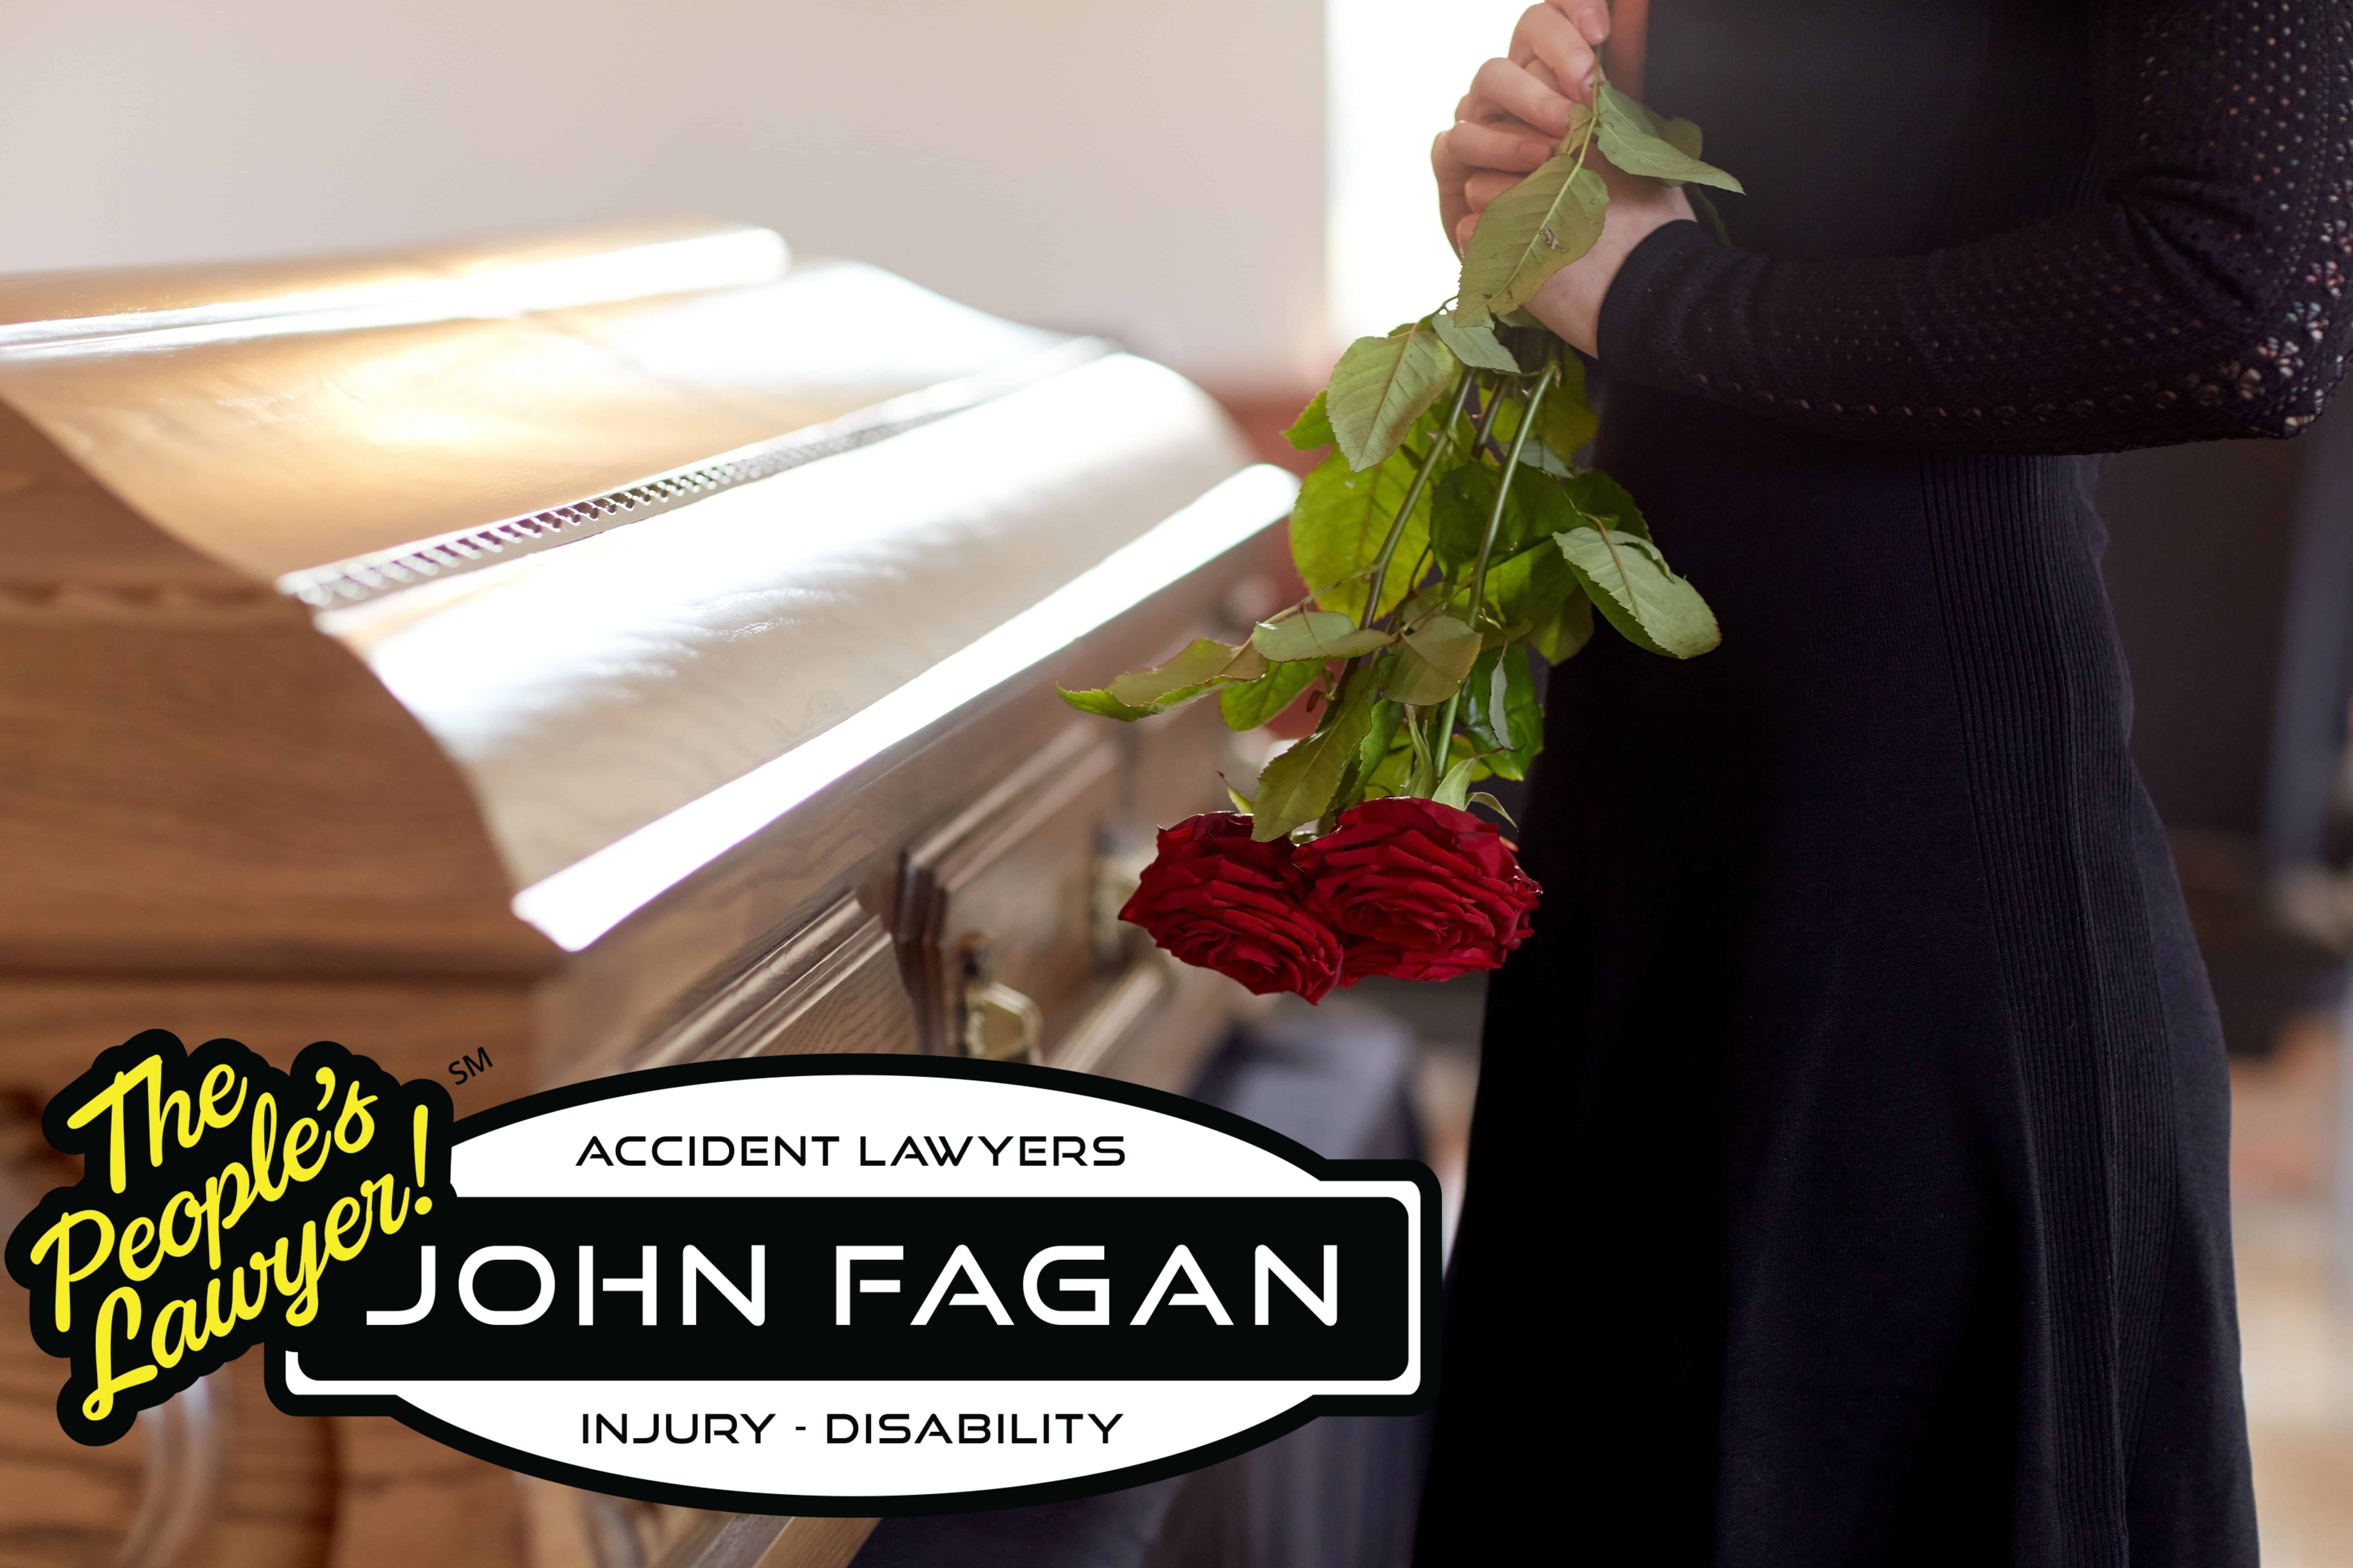 Funeral Home Negligence in Florida: What to Watch For